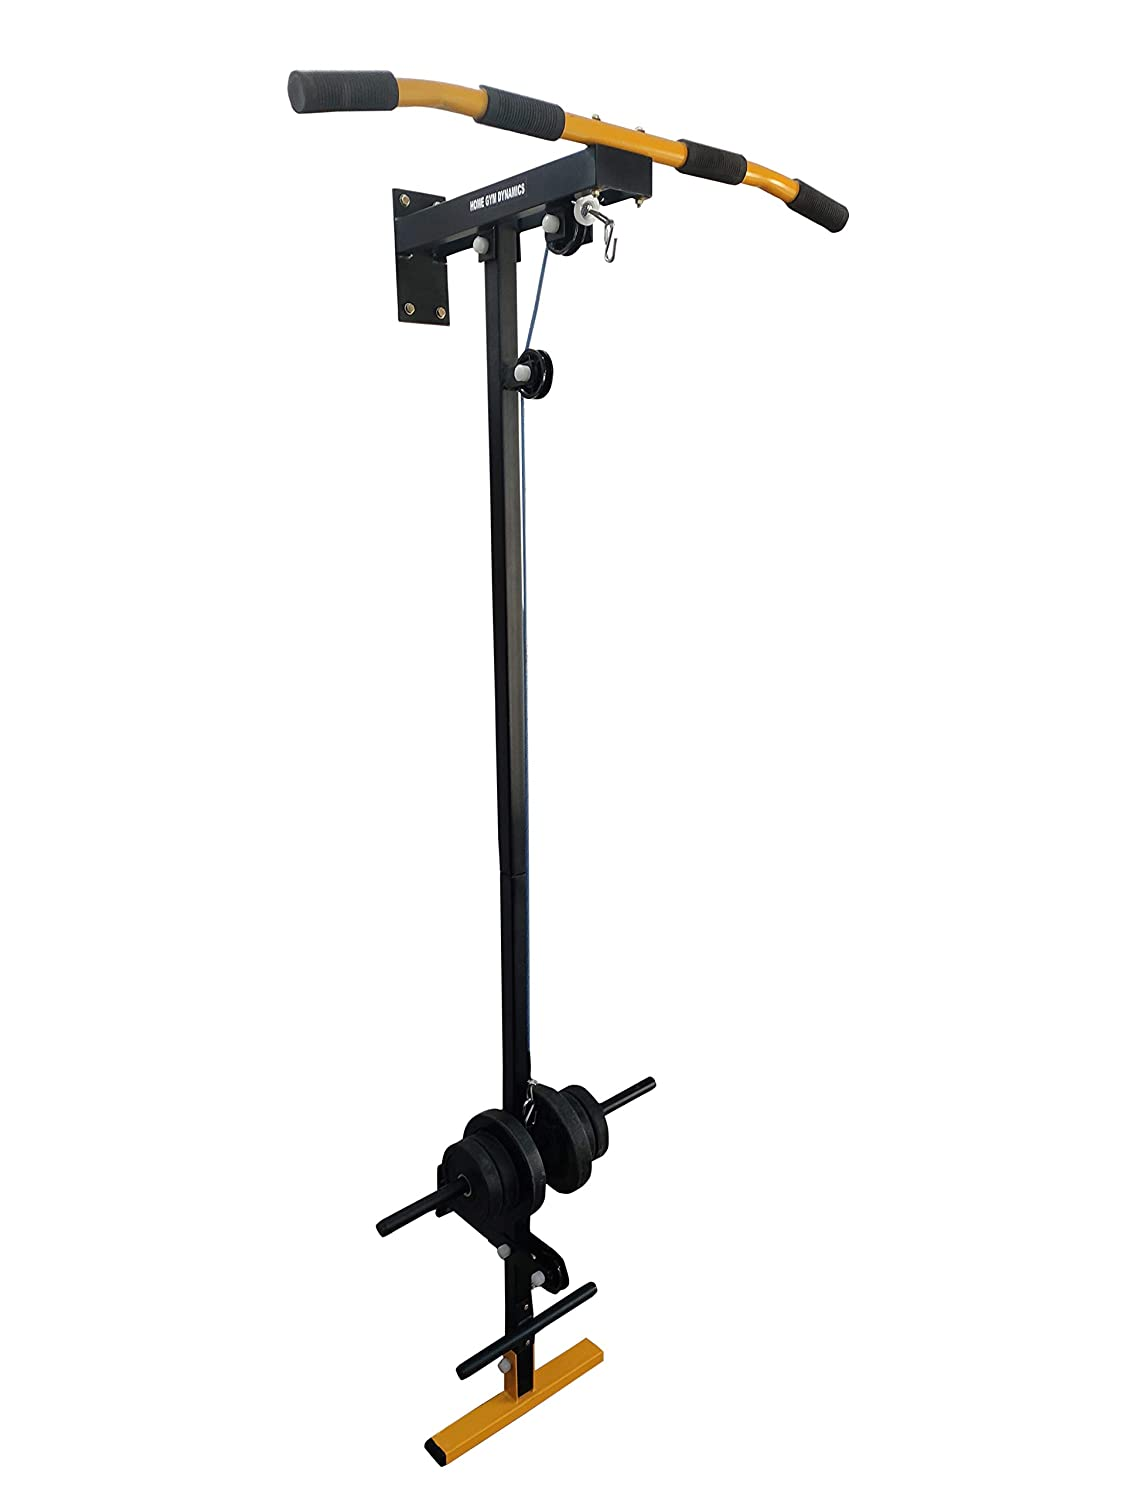 Home Gym Dynamics Pull Up Bar with Top Bottom Pulley Heavy Duty Wall Mounted Strength Training Equipment